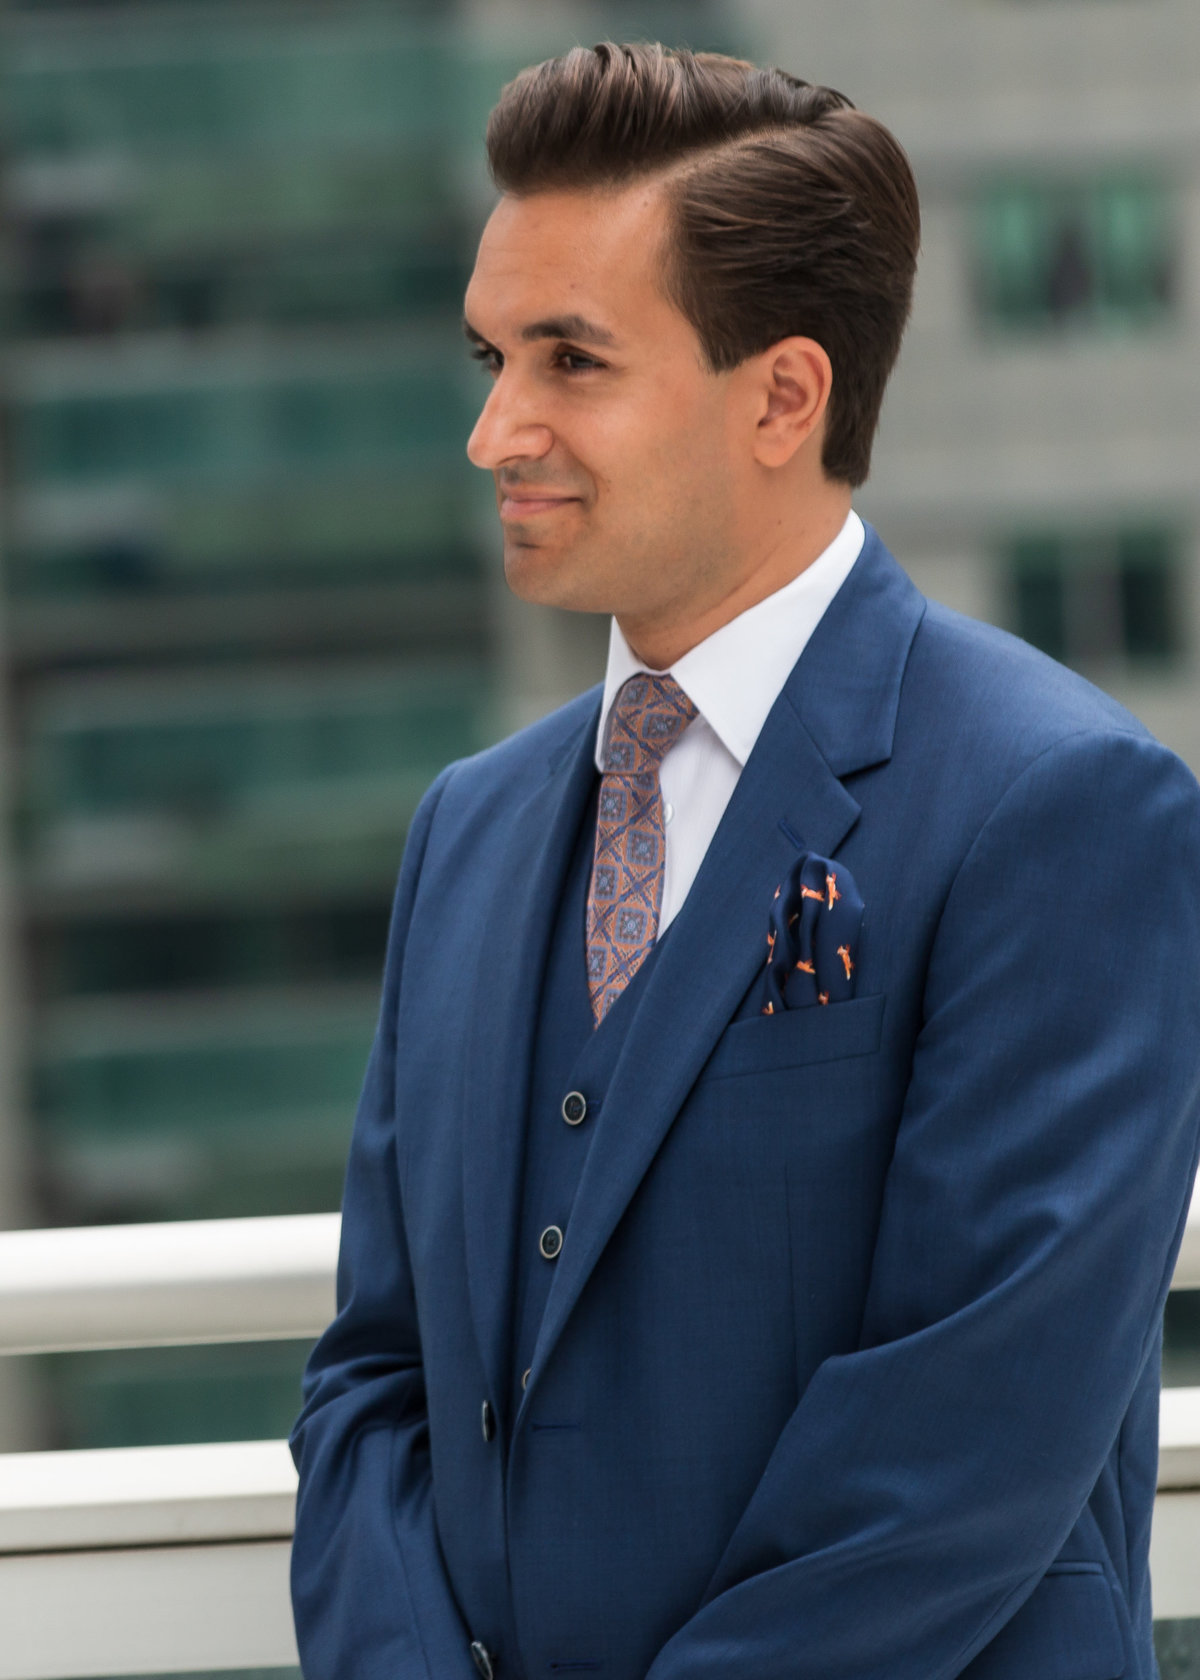 Groom wearing a blue suit smiling at the bride at his Toronto Rooftop Wedding Ceremony